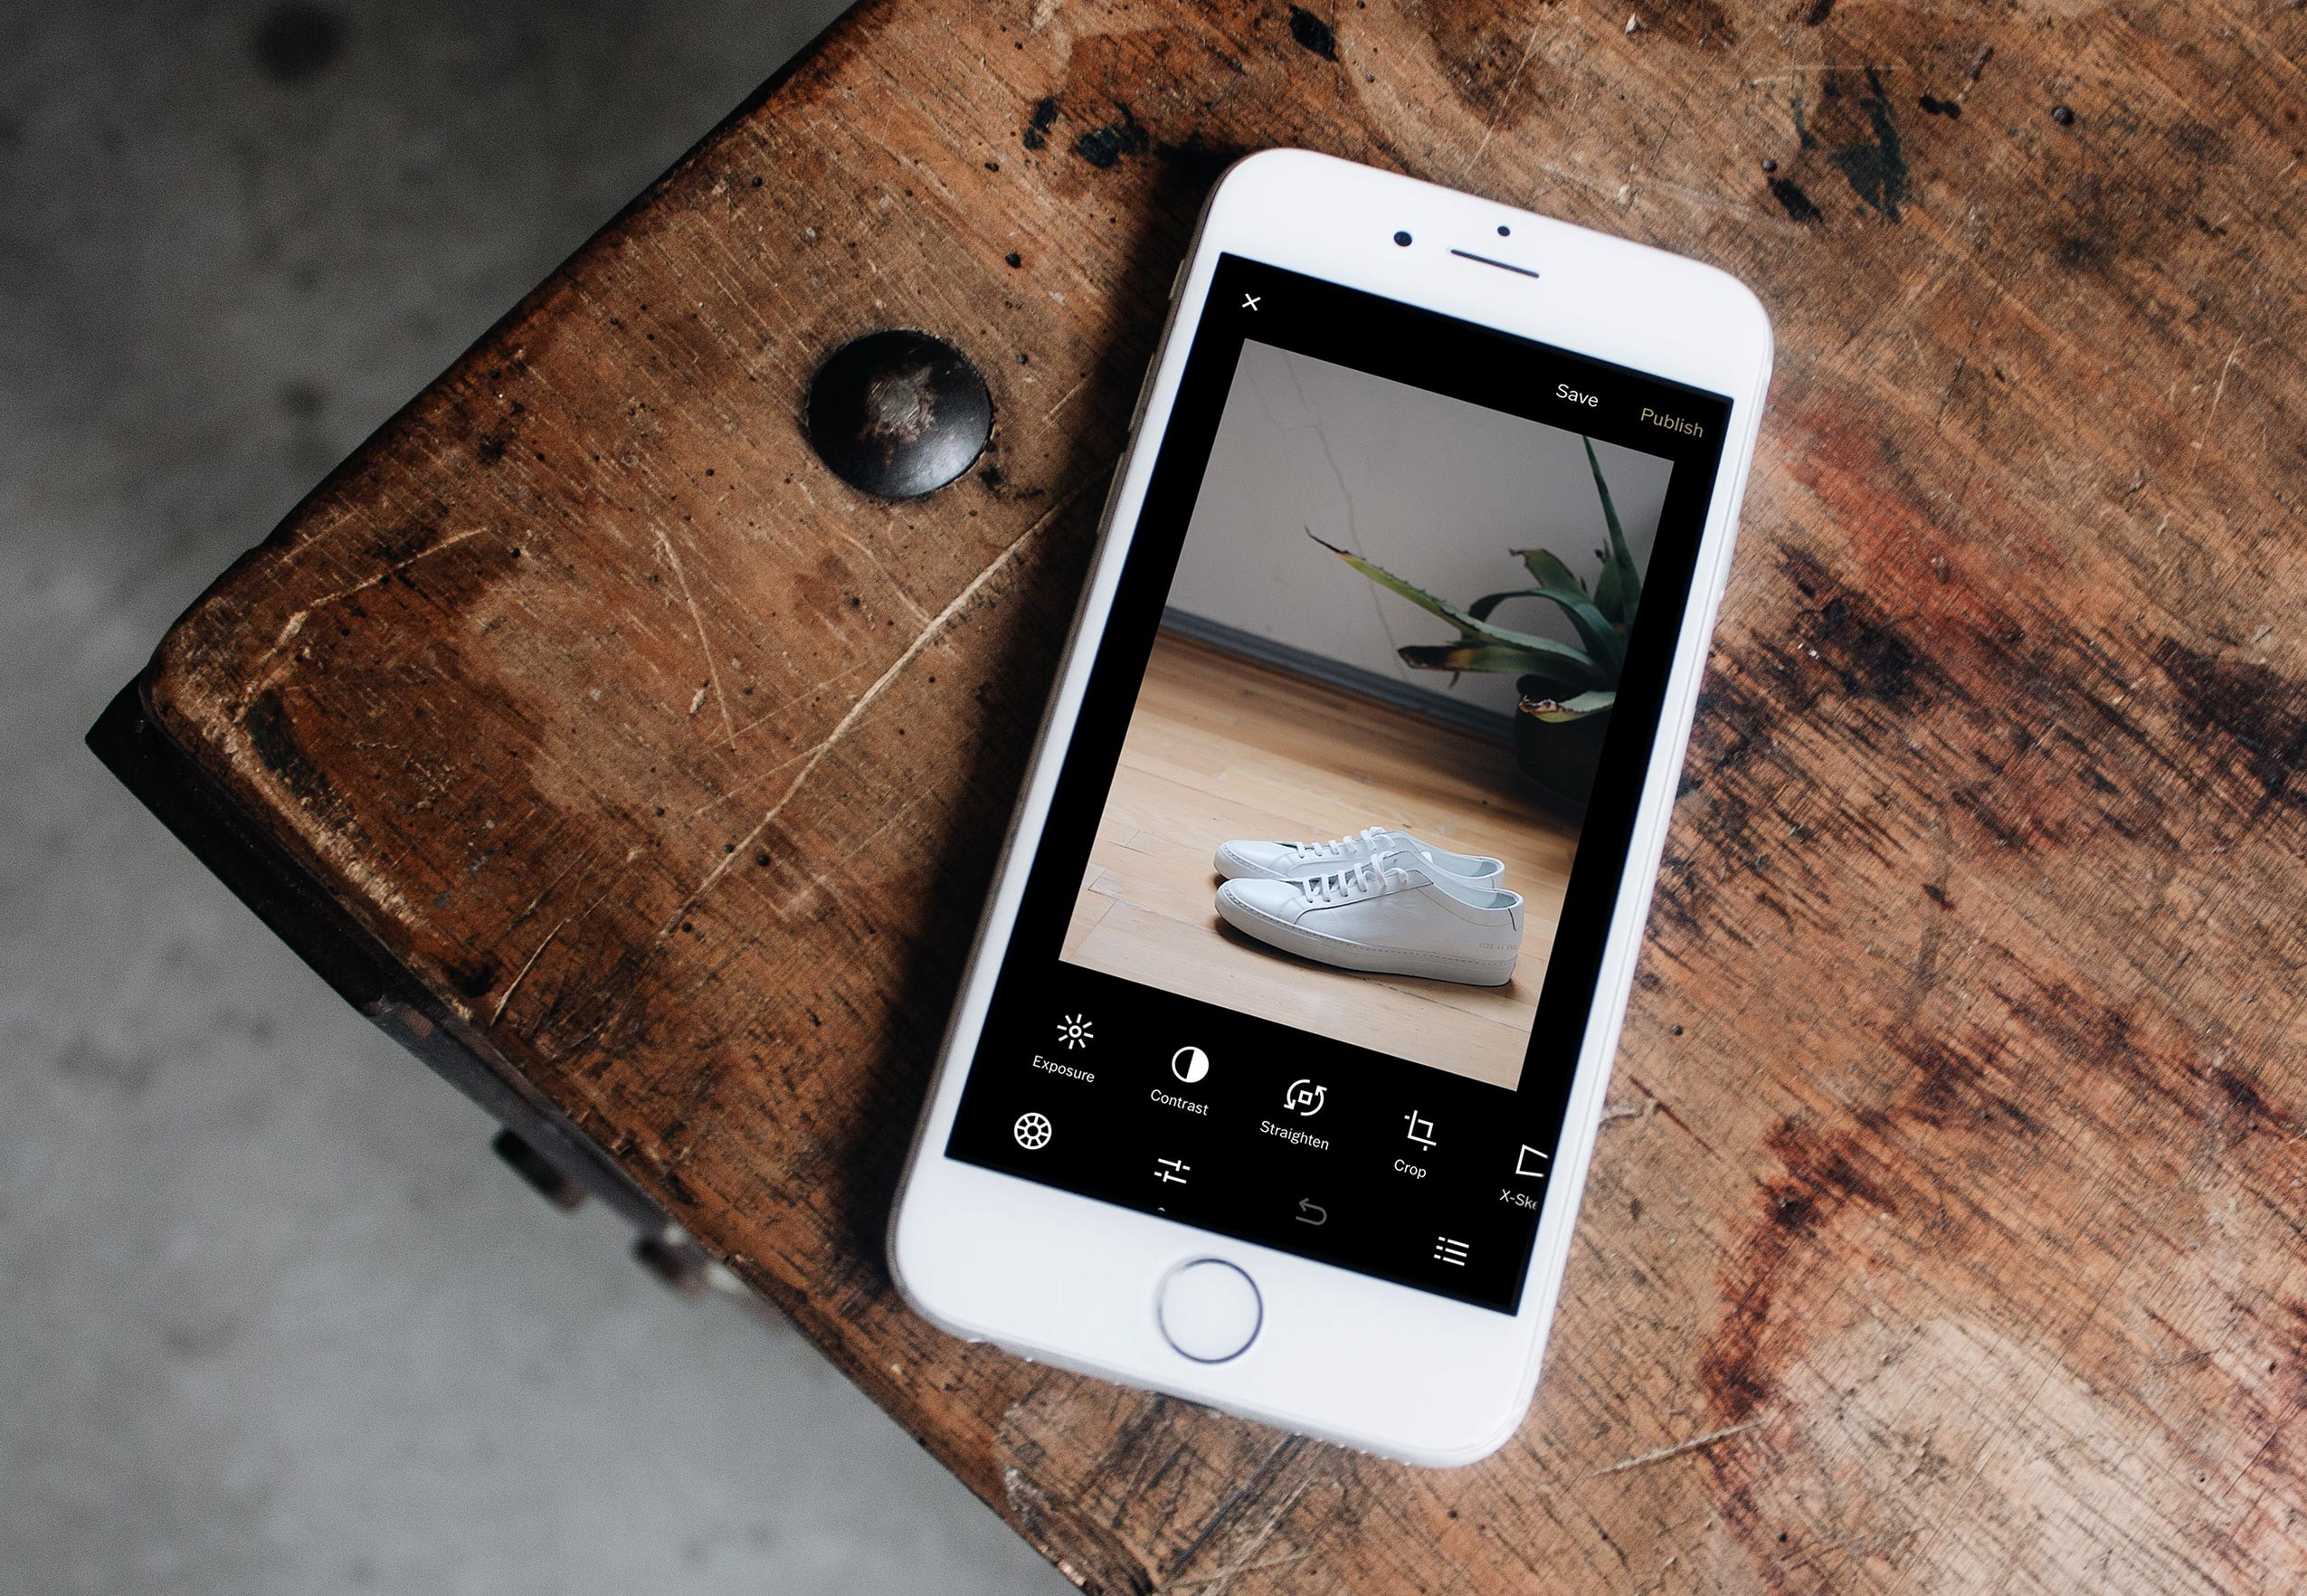 VSCO Is One Of The Most Popular Photo Editing Apps, Make The Most Of The Functions.